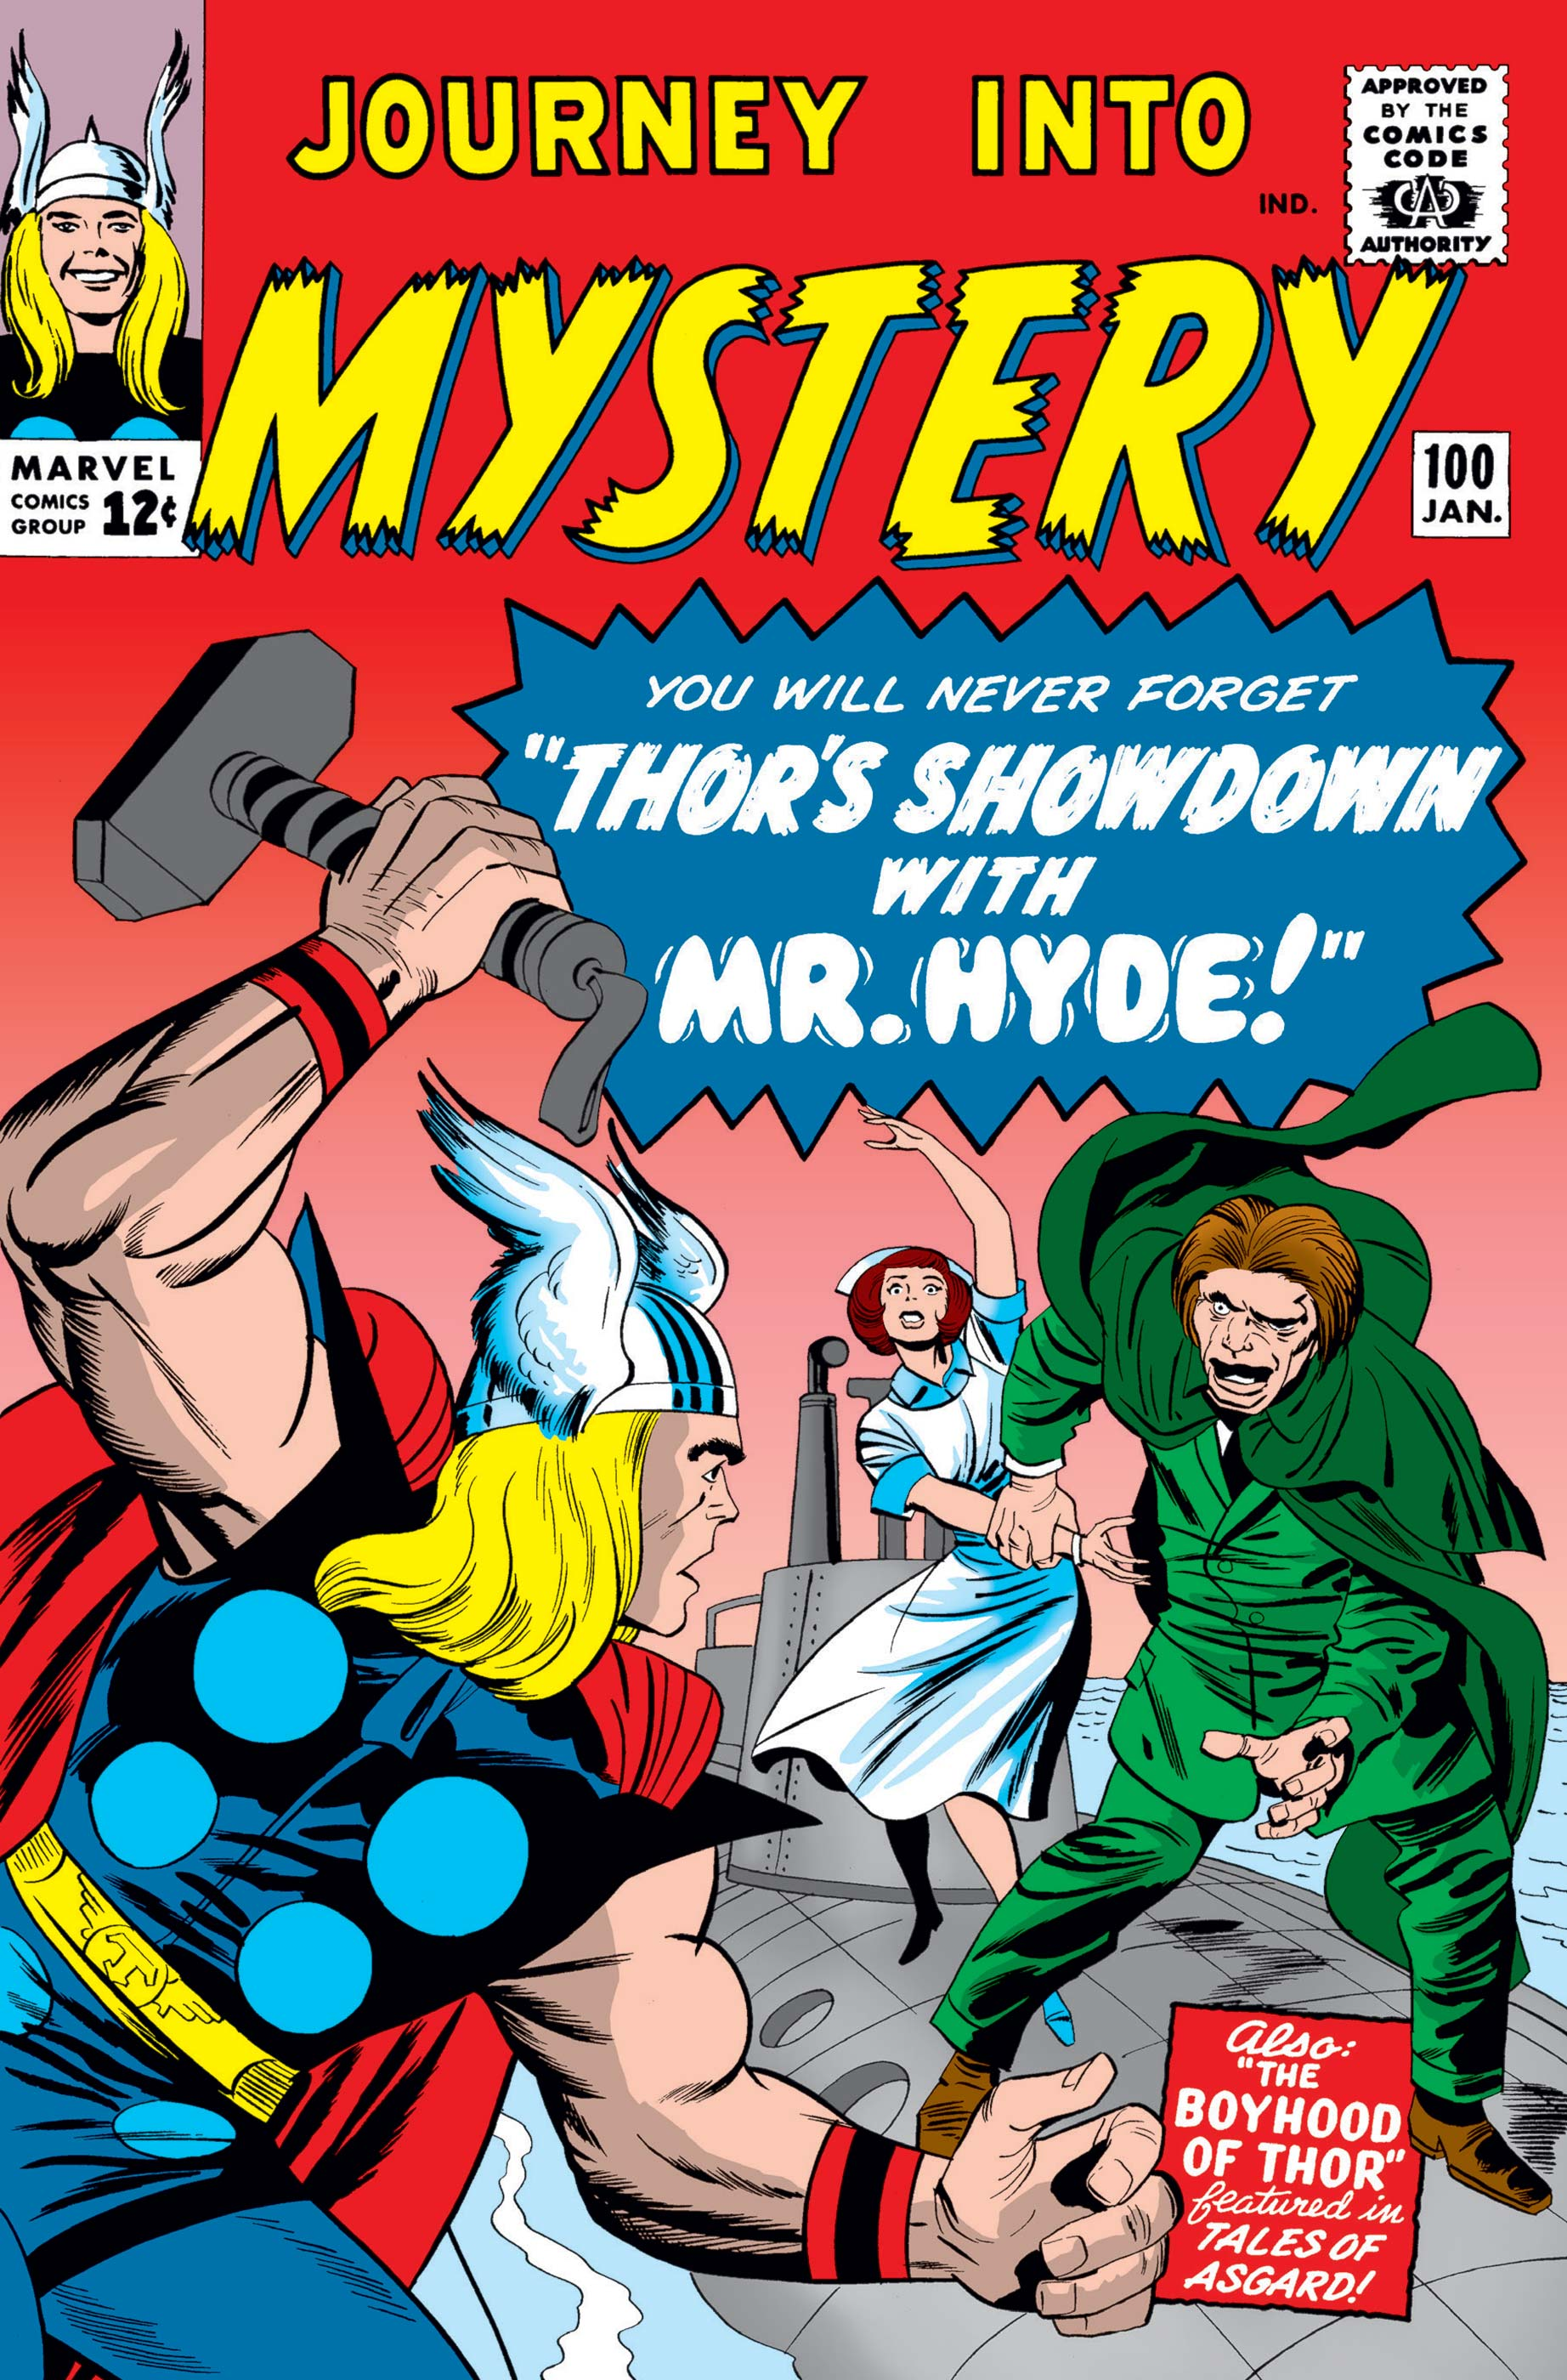 Journey Into Mystery (1952) #100